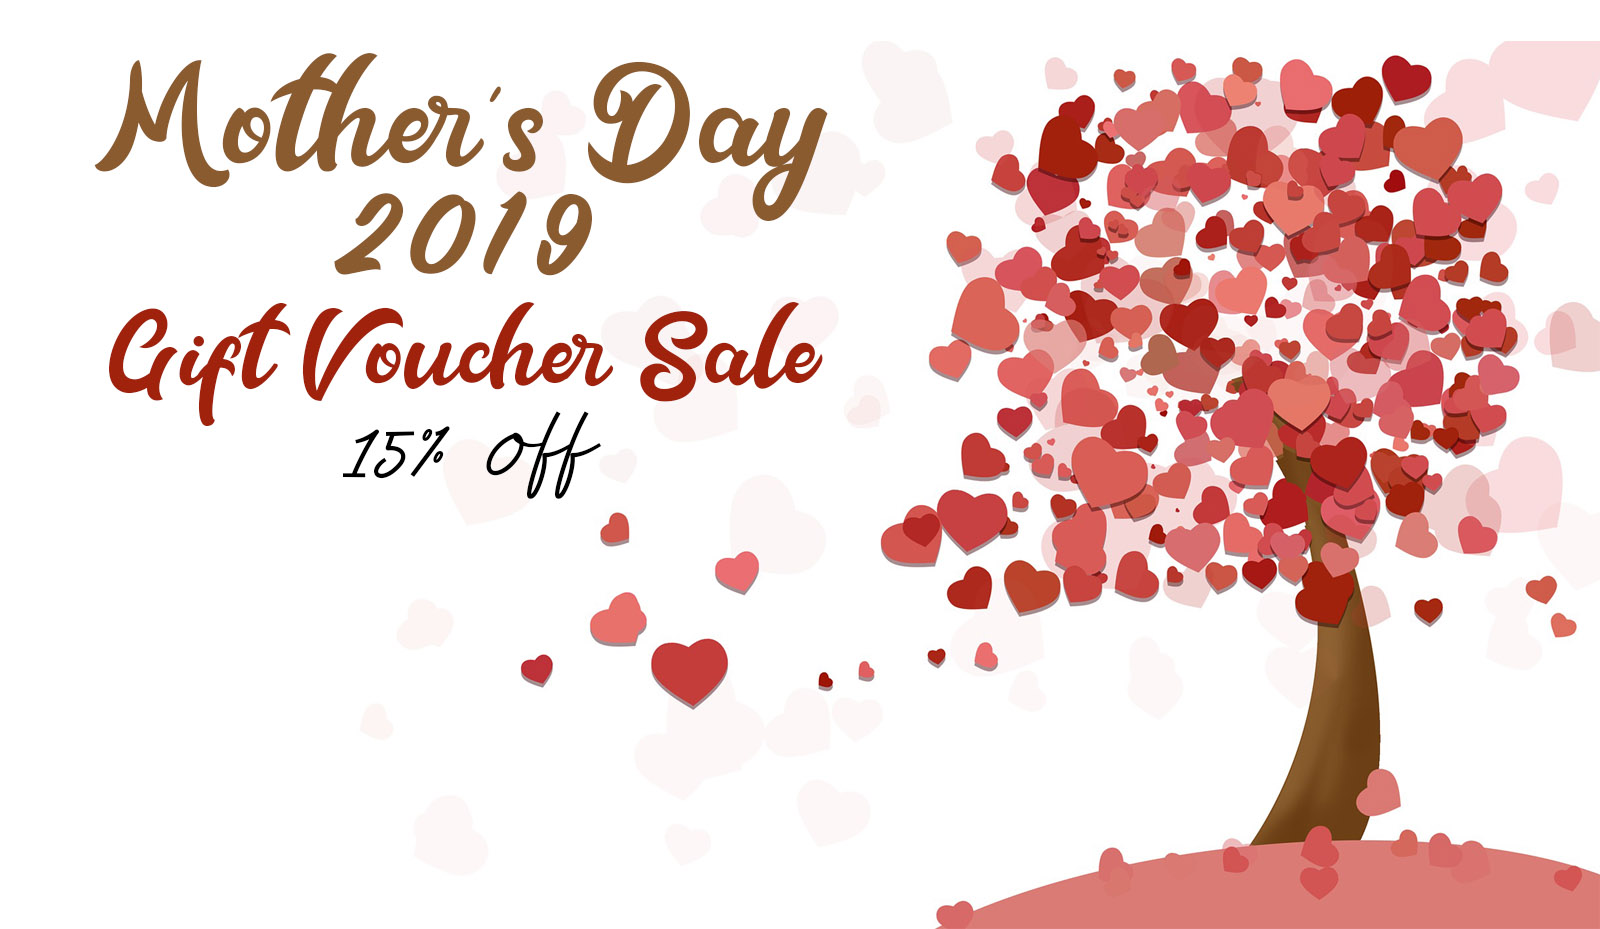 Mother's Day – Gift Voucher Sale 15% off